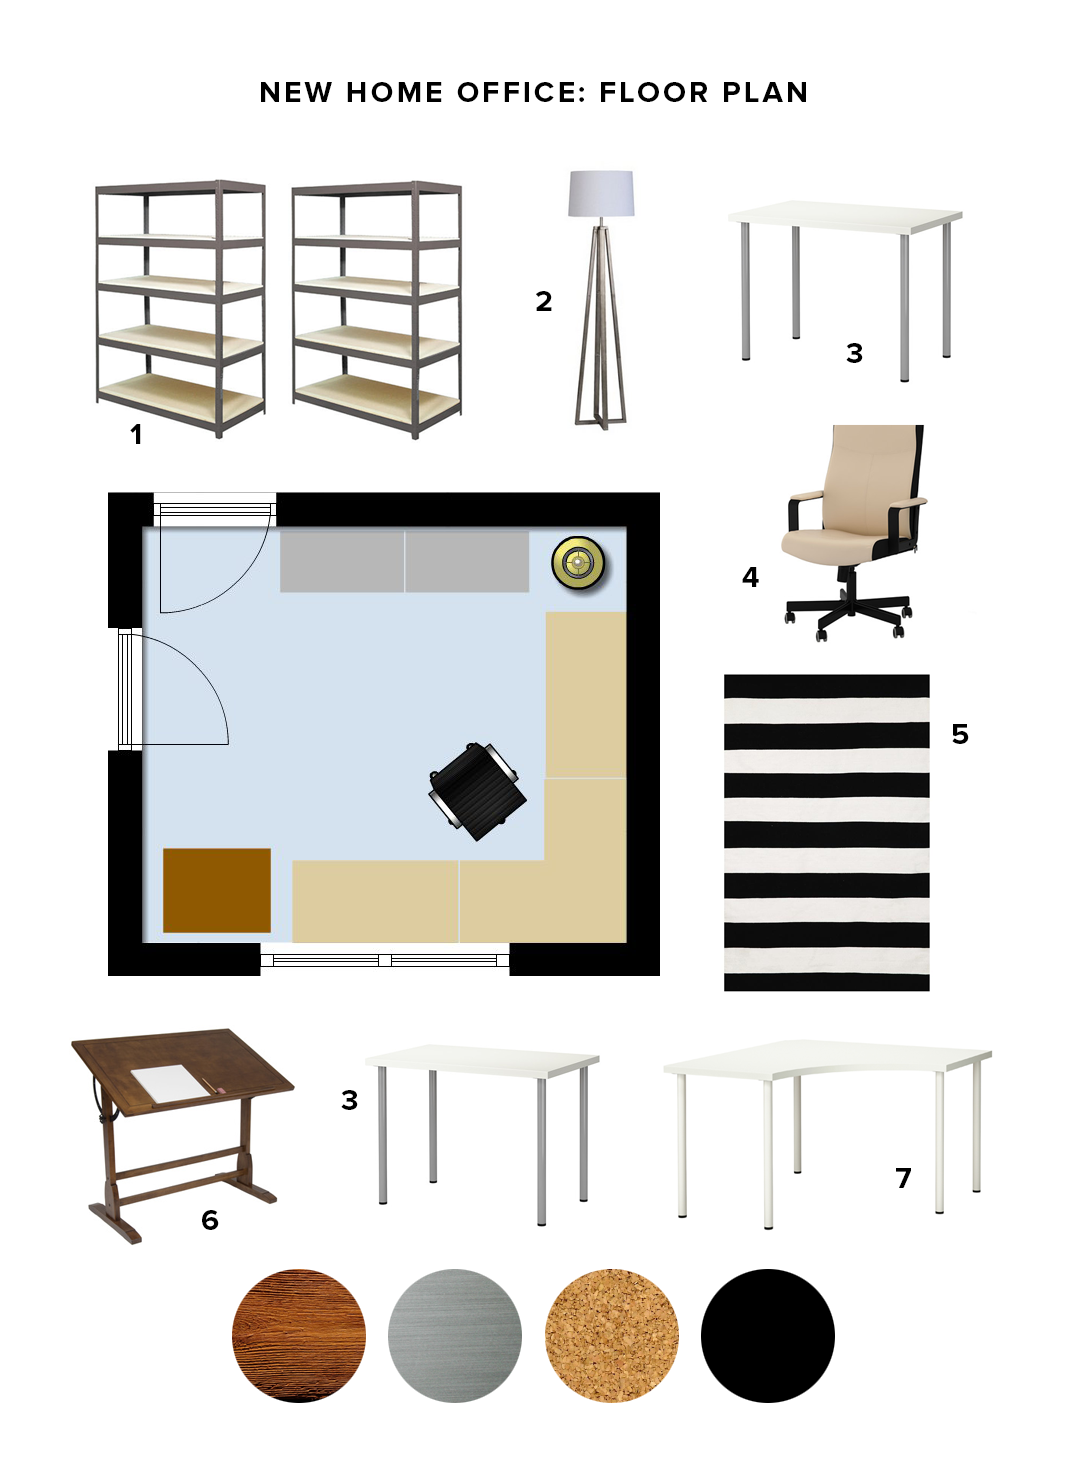 Floor Plan for My New Home Office